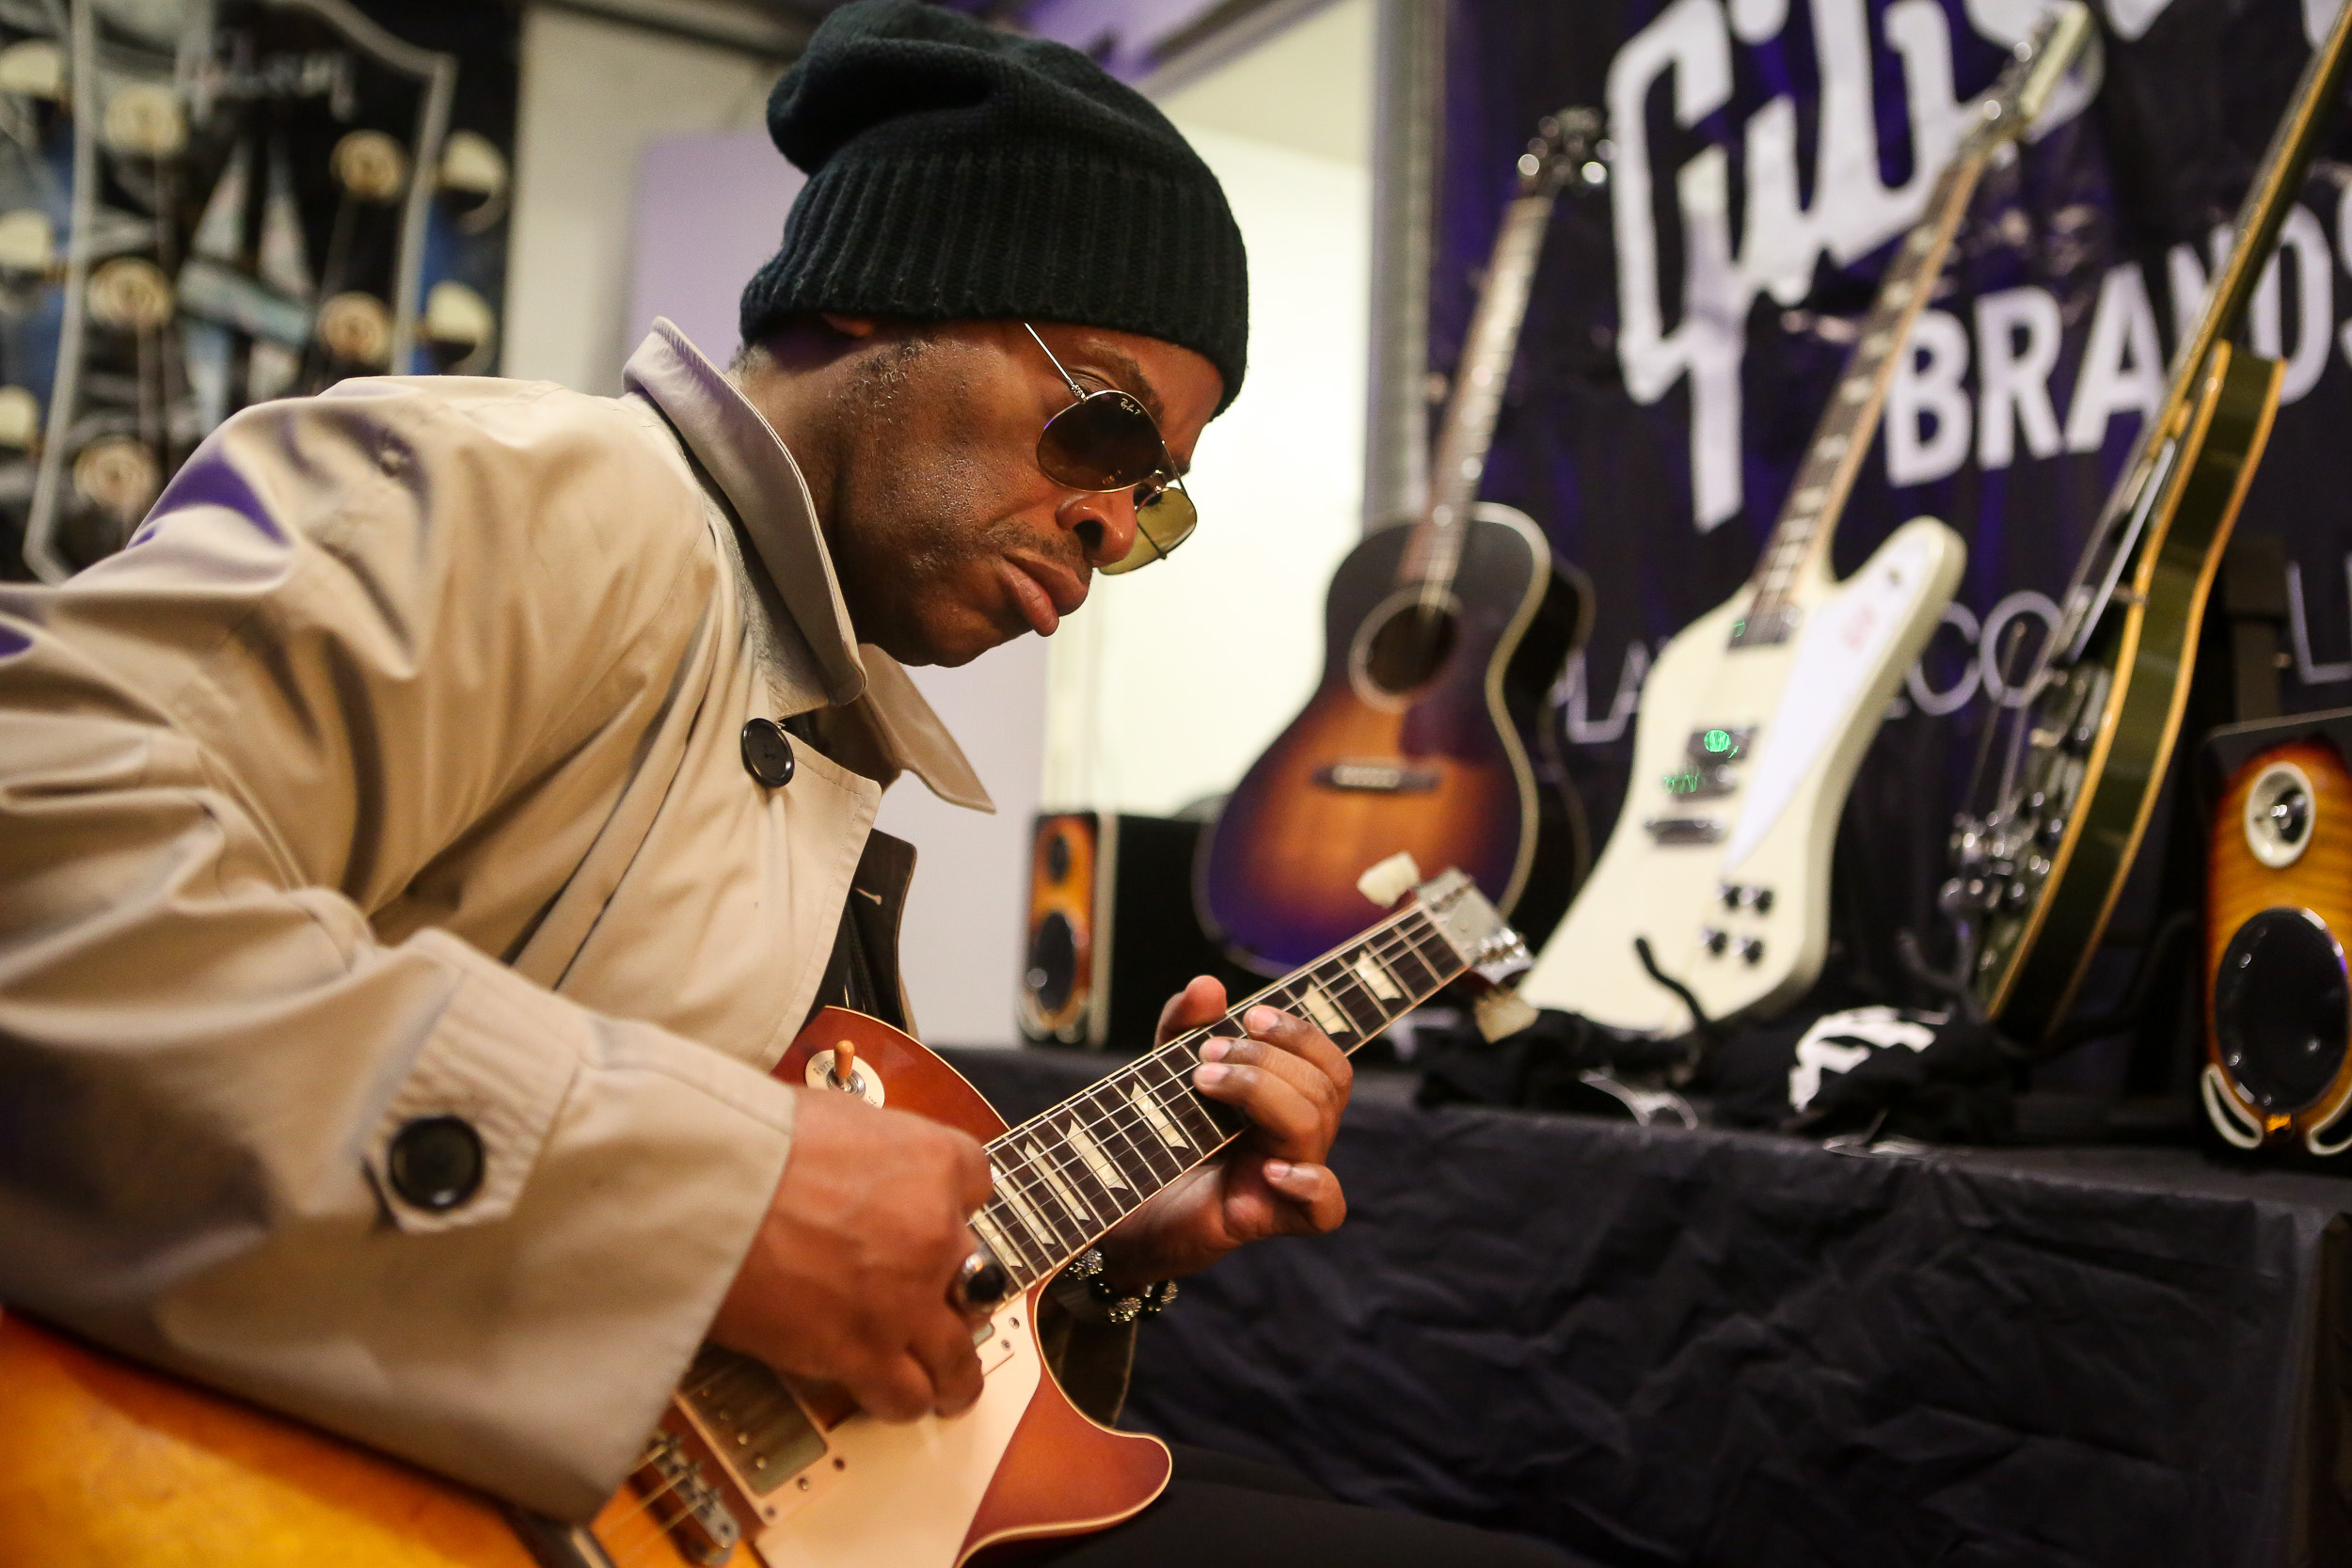 jesse johnson (the time), backstage in the gibson tent